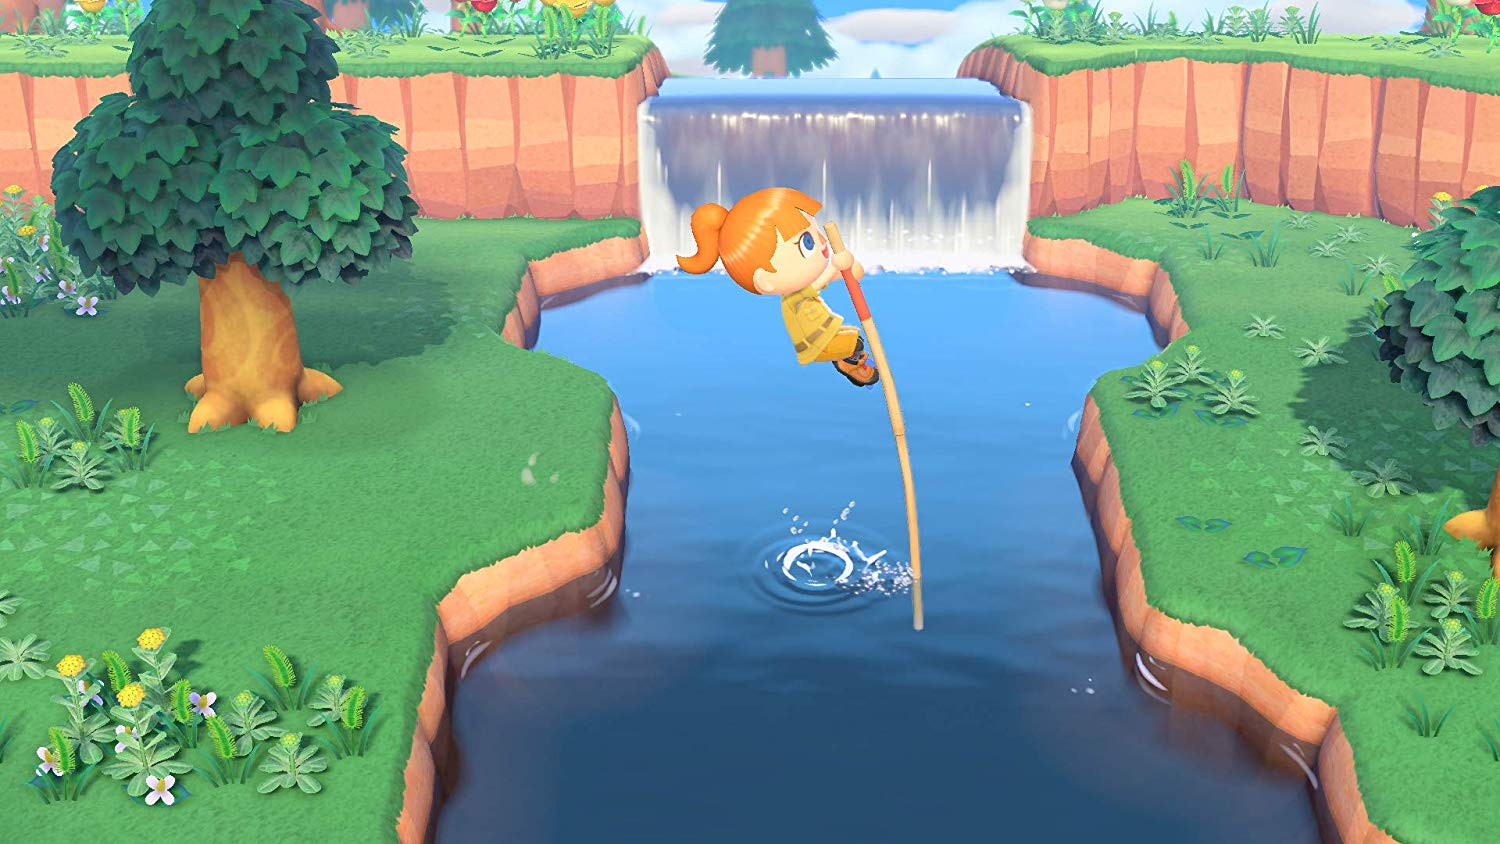 animal crossing, new horizons, animal crossing new horizons, vaulting pole, vault, how to get